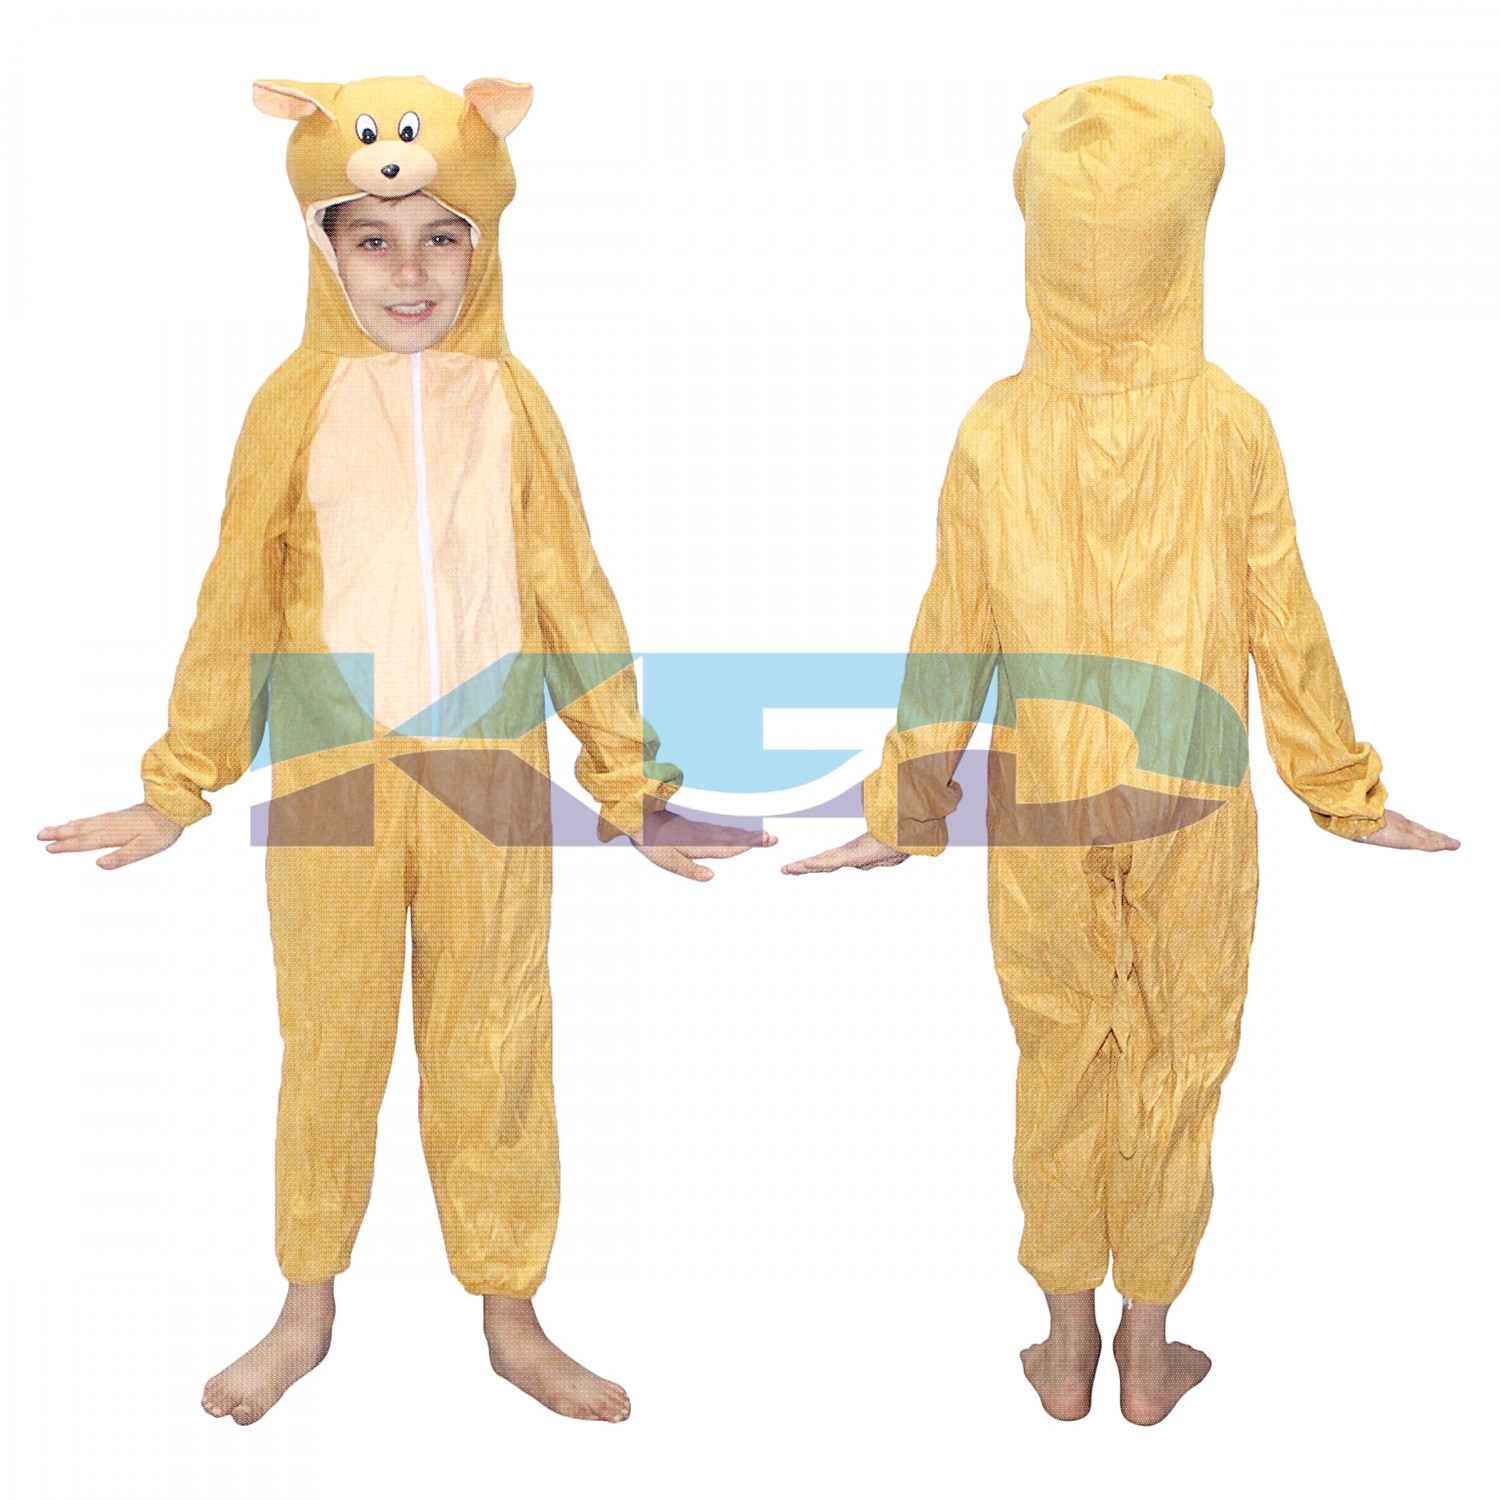 Jerry Fancy dress for kids,Diseny Cartoon Costume for Annual function/Theme Party/Stage Shows/Competition/Birthday Party Dress